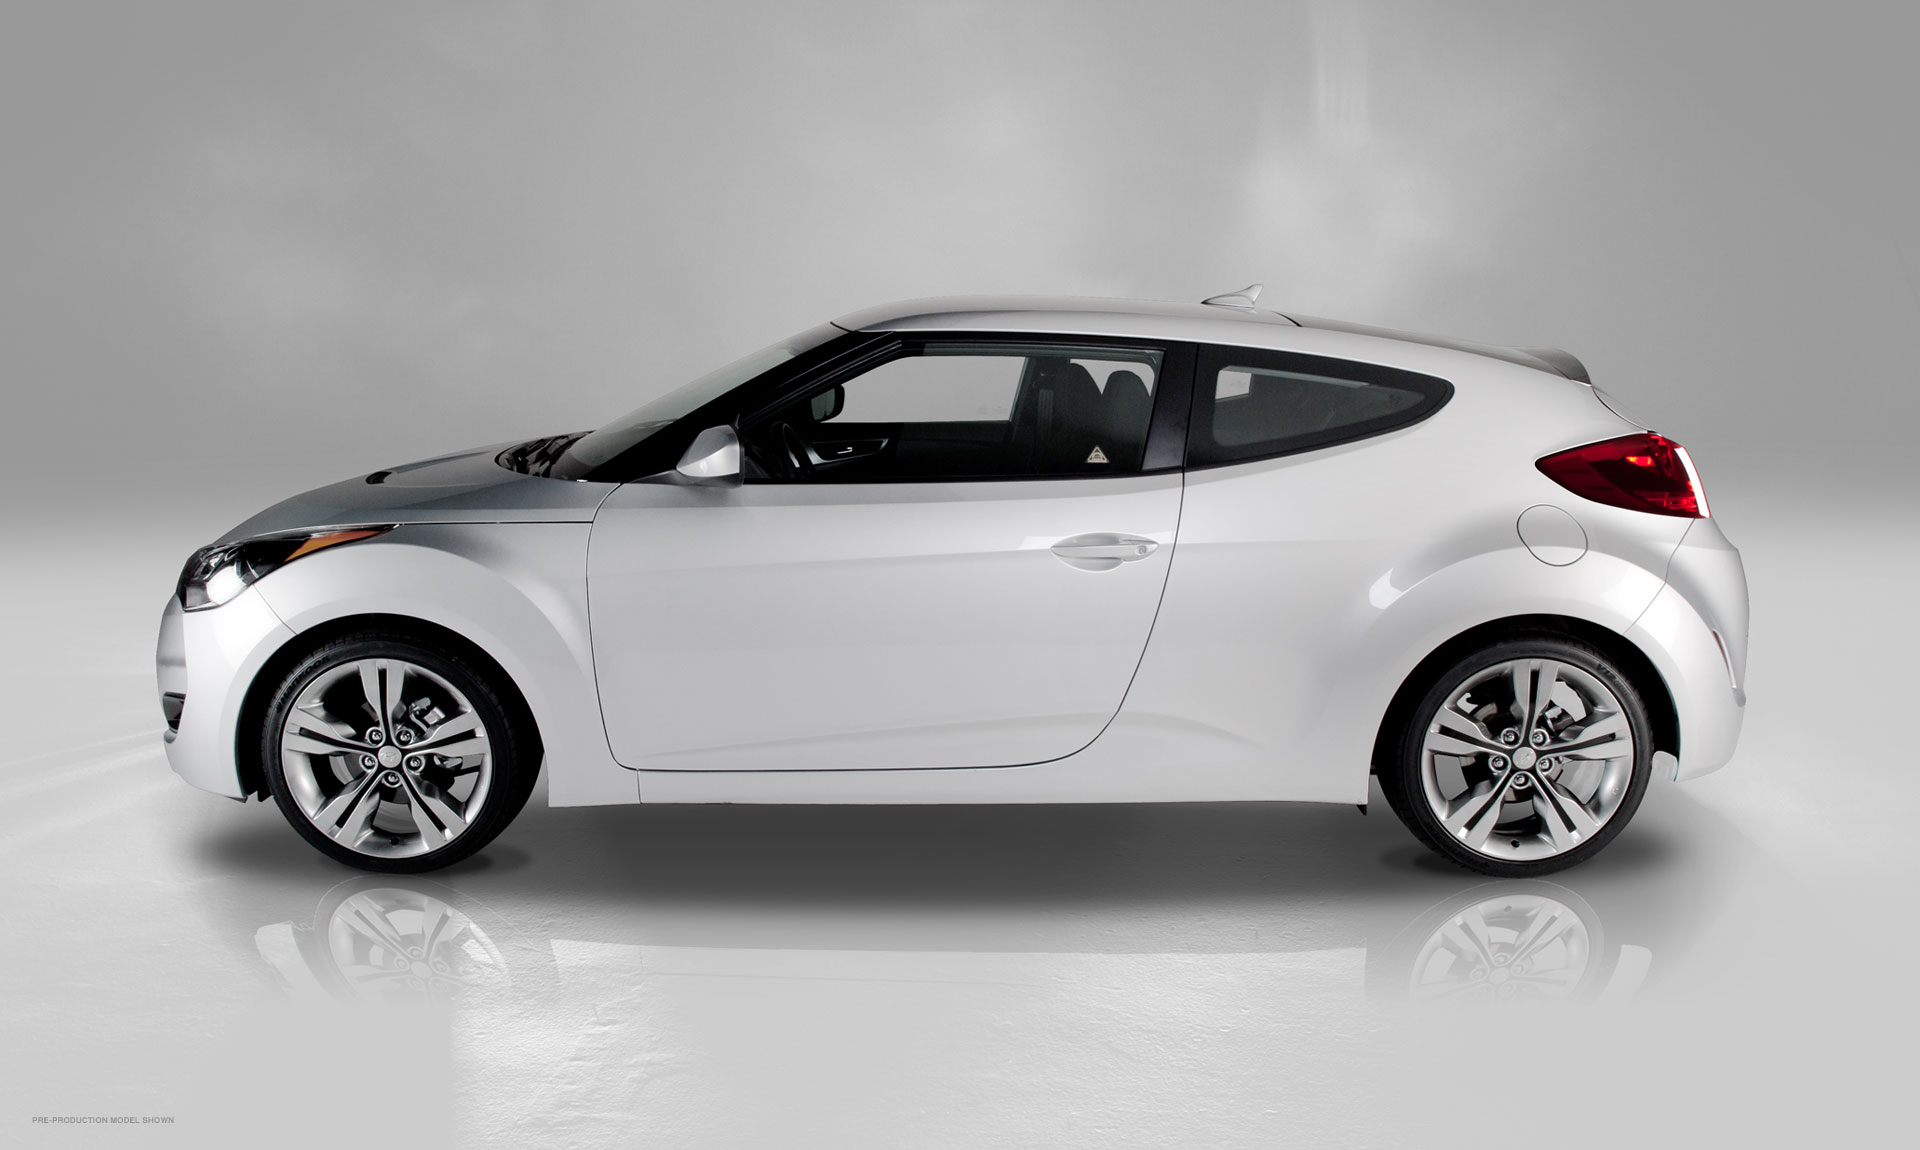 2012 Hyundai Veloster Side   Car Reviews and news at CarReview.com